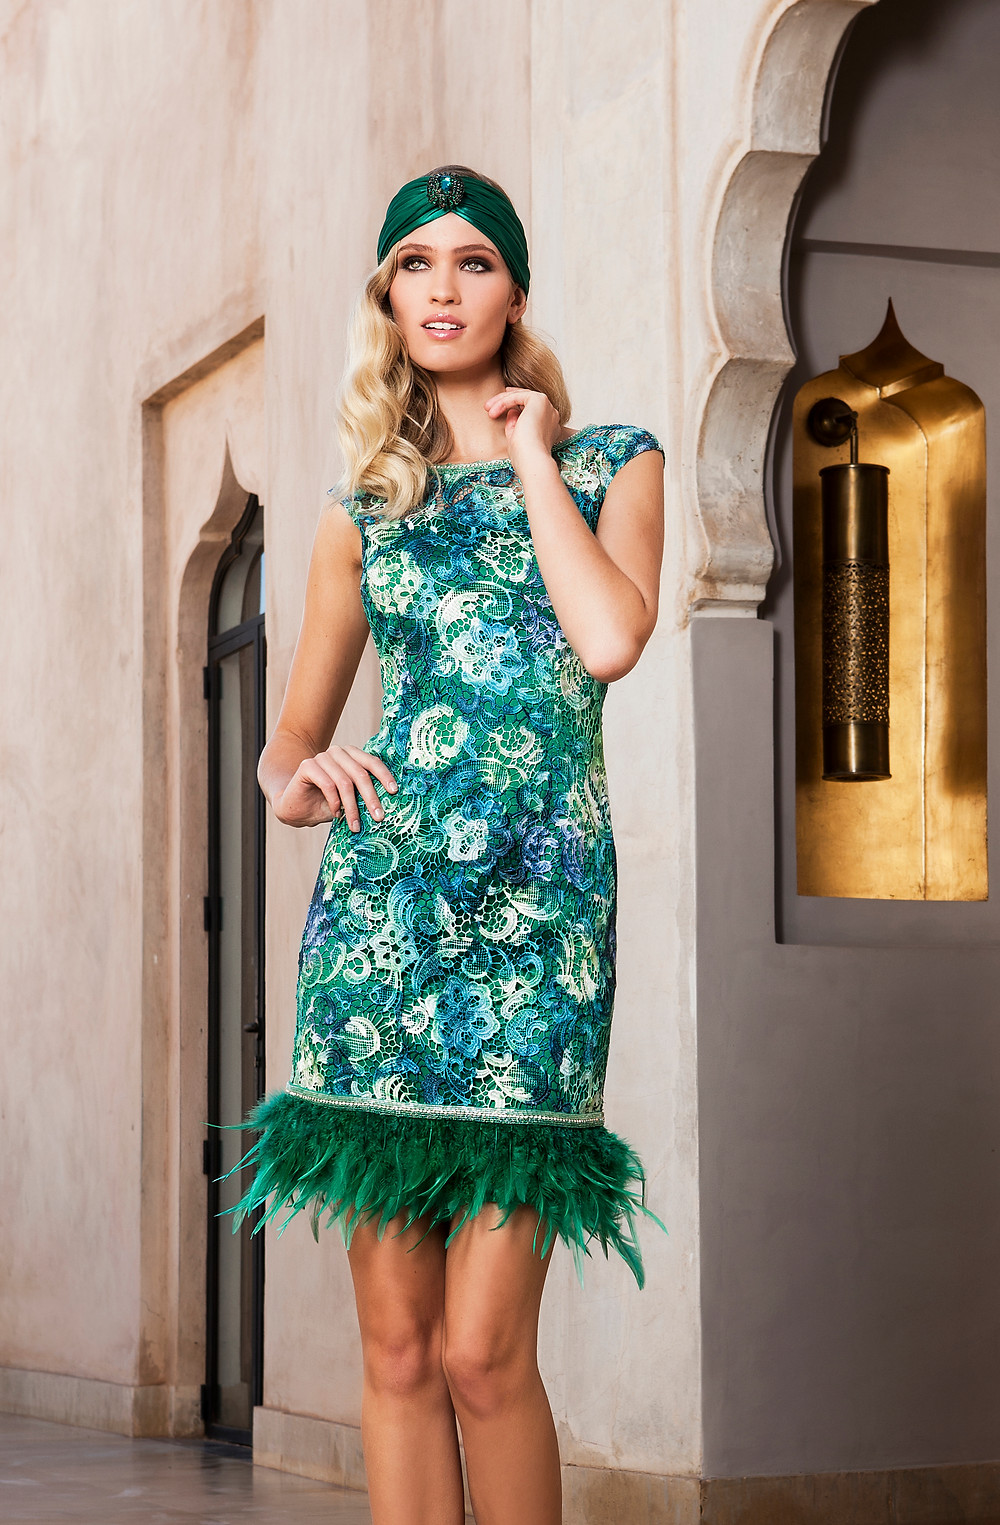 Sonia Pena 2015 dress from L Occasionwear Ayr